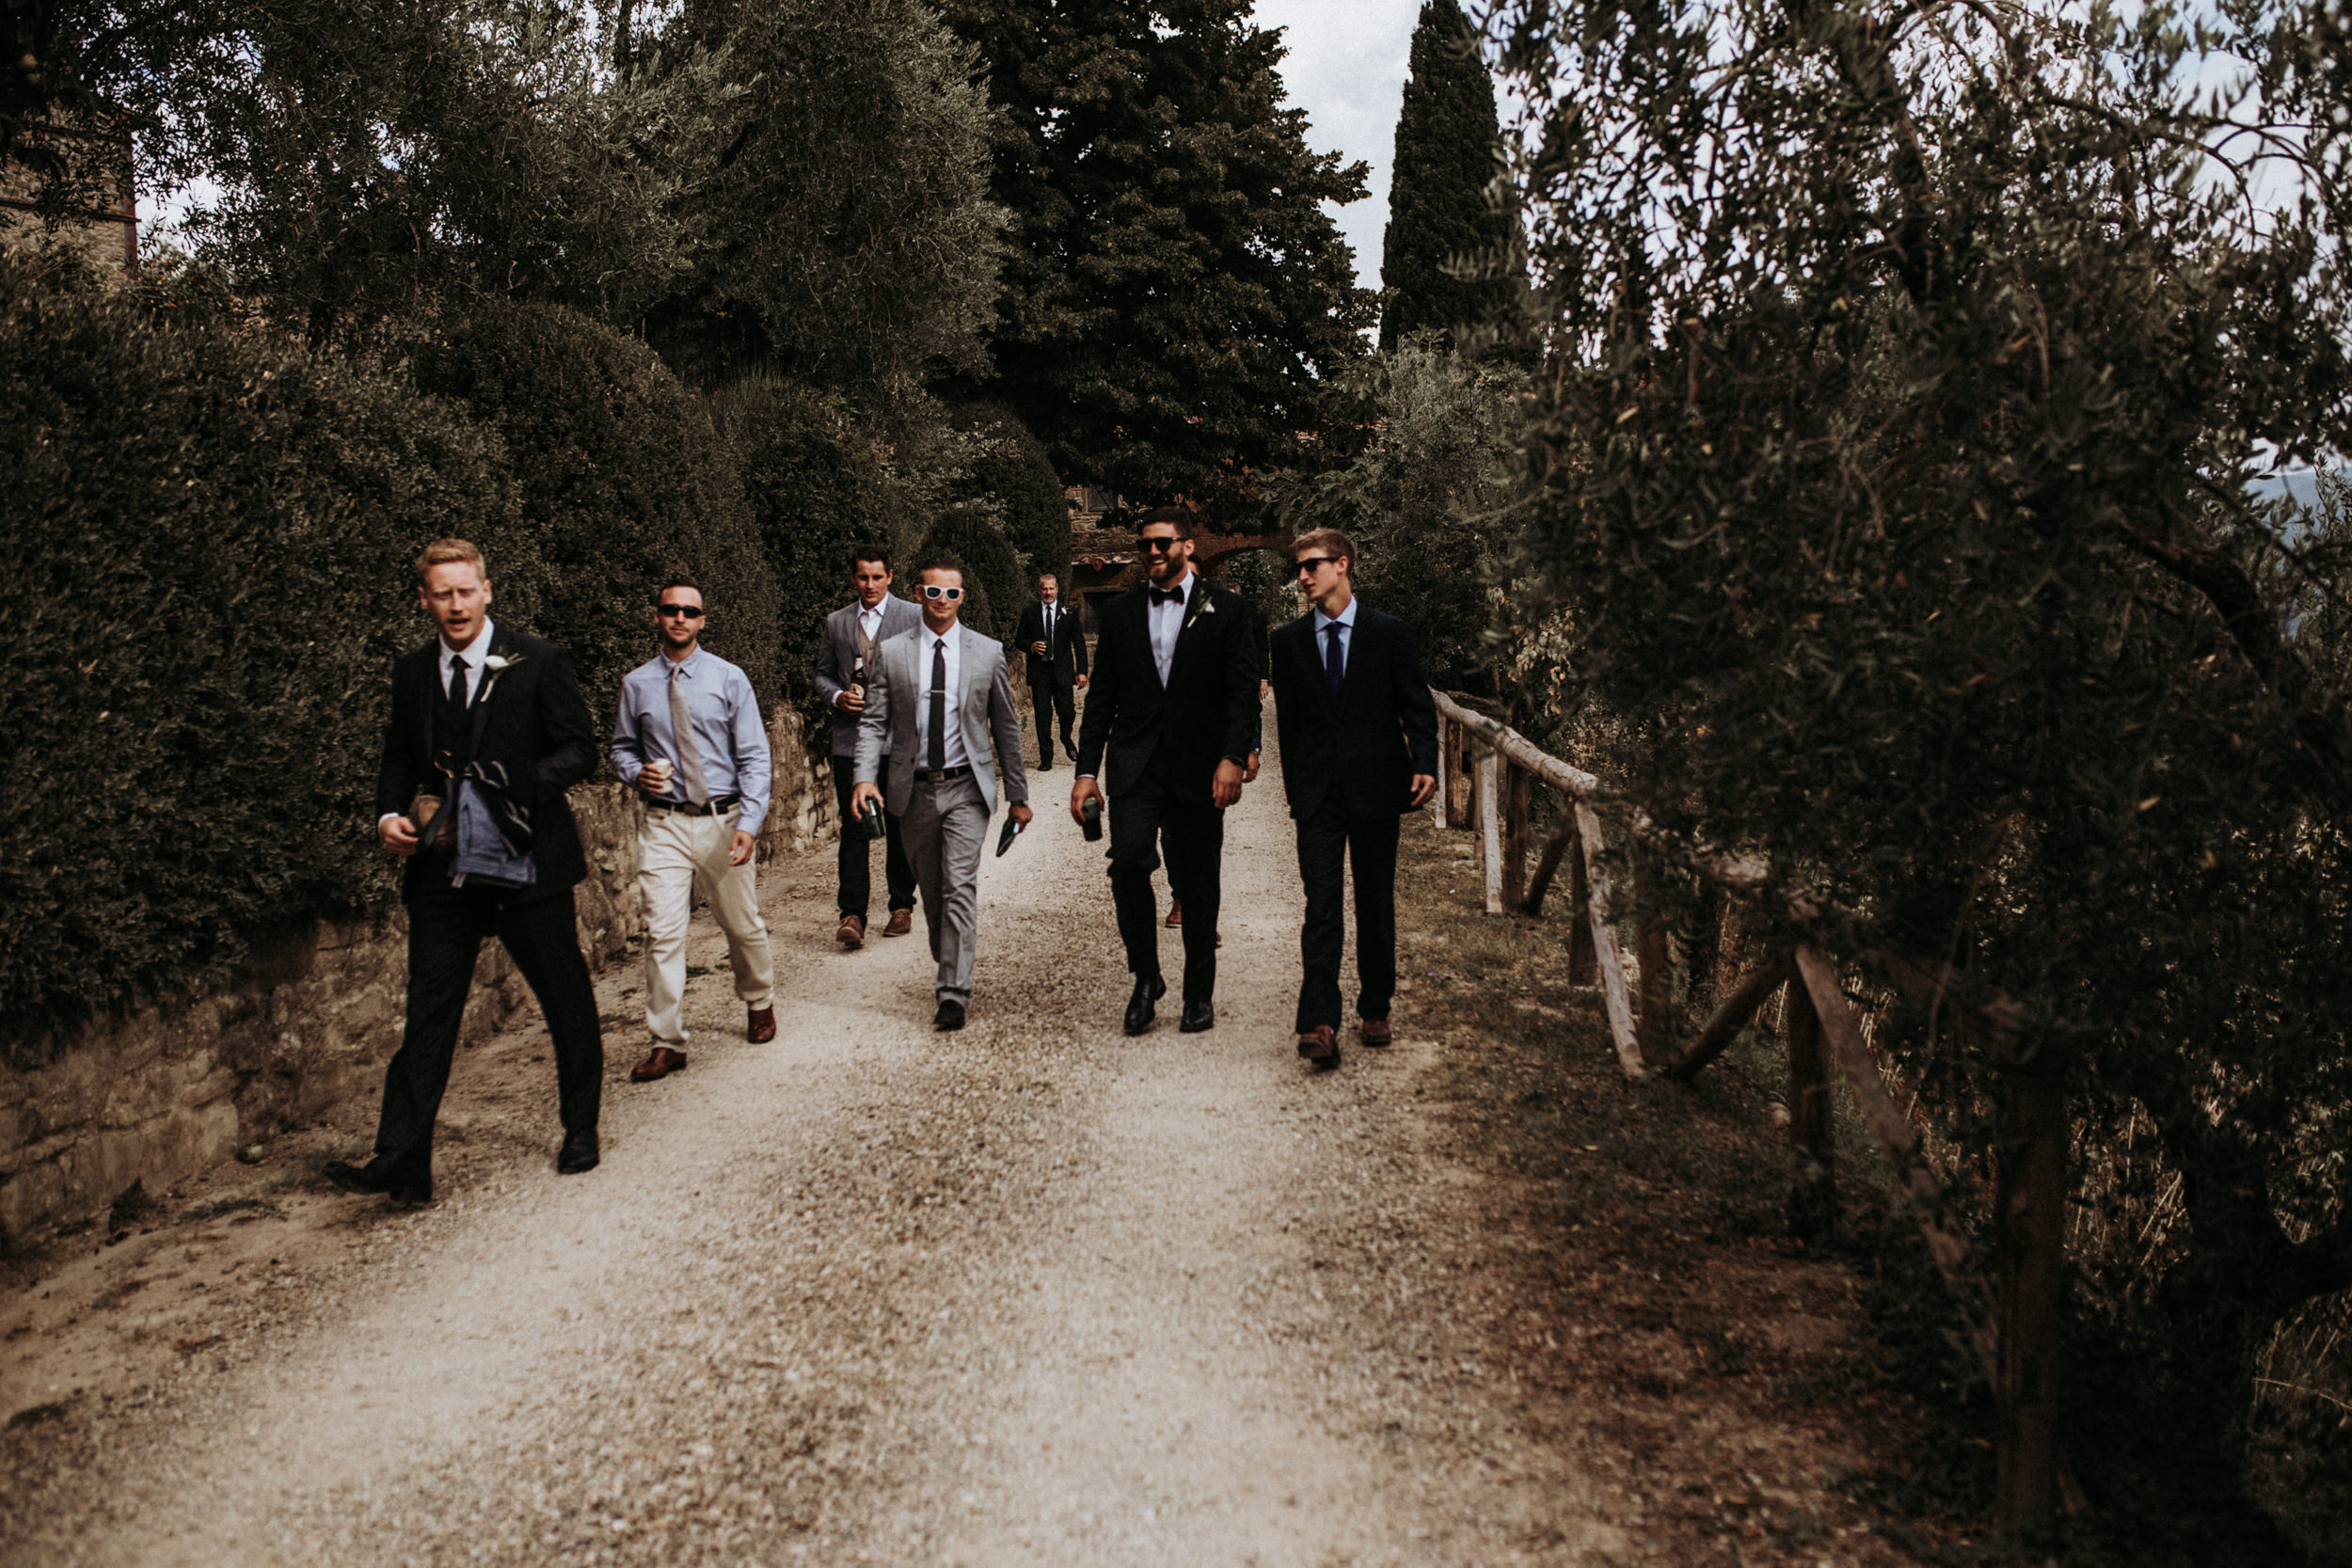 dm_photography_KW_Tuscanyweddingday_175